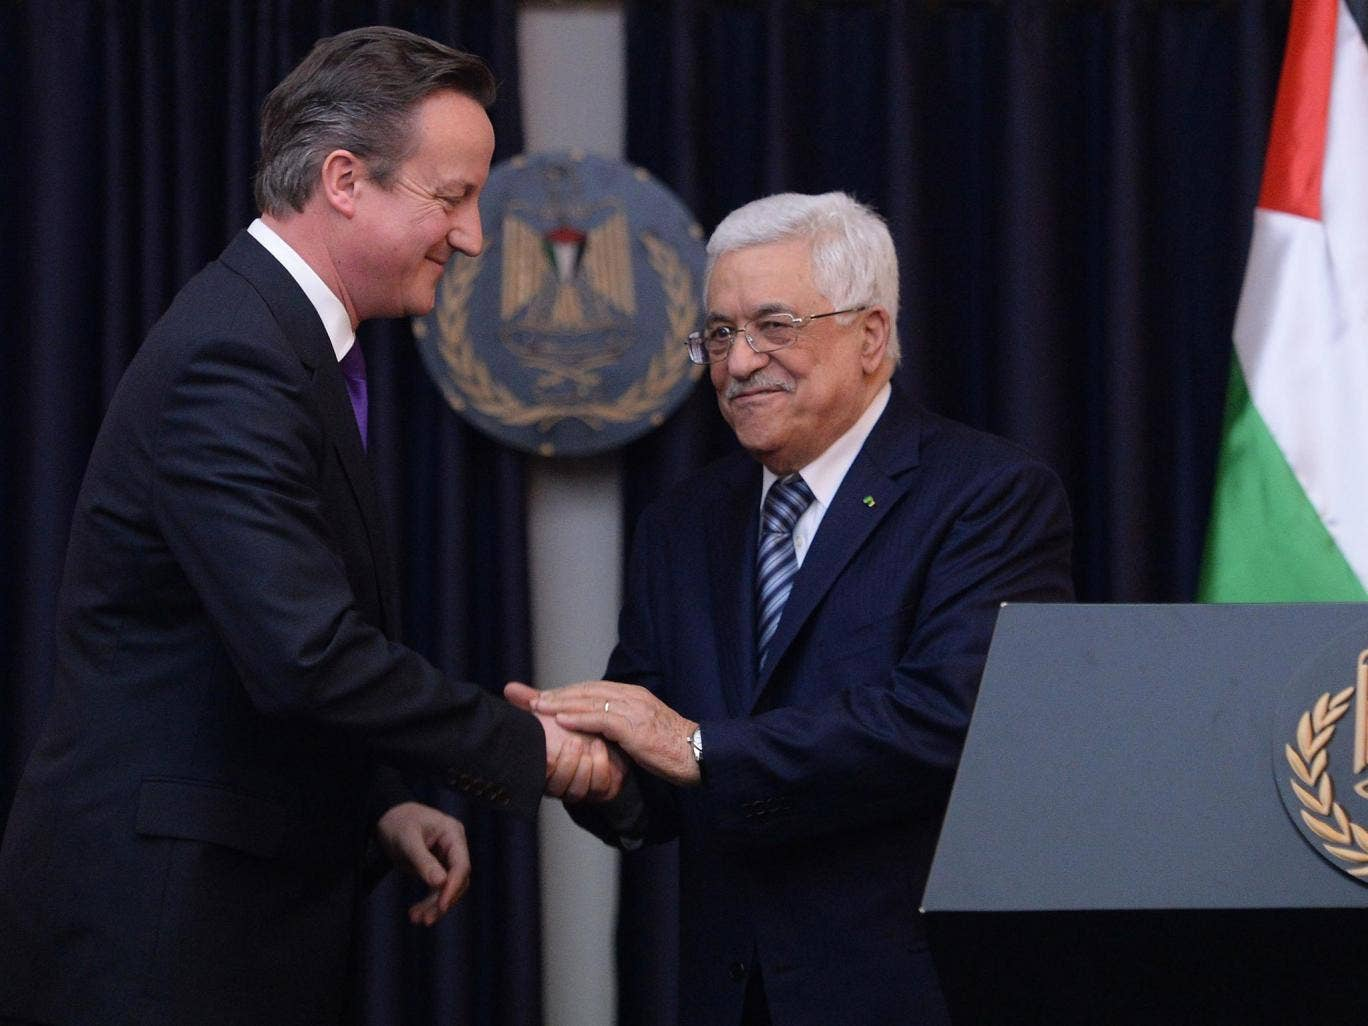 Prime Minister David Cameron holds a news conference with Palestinian president Mahmoud Abbas